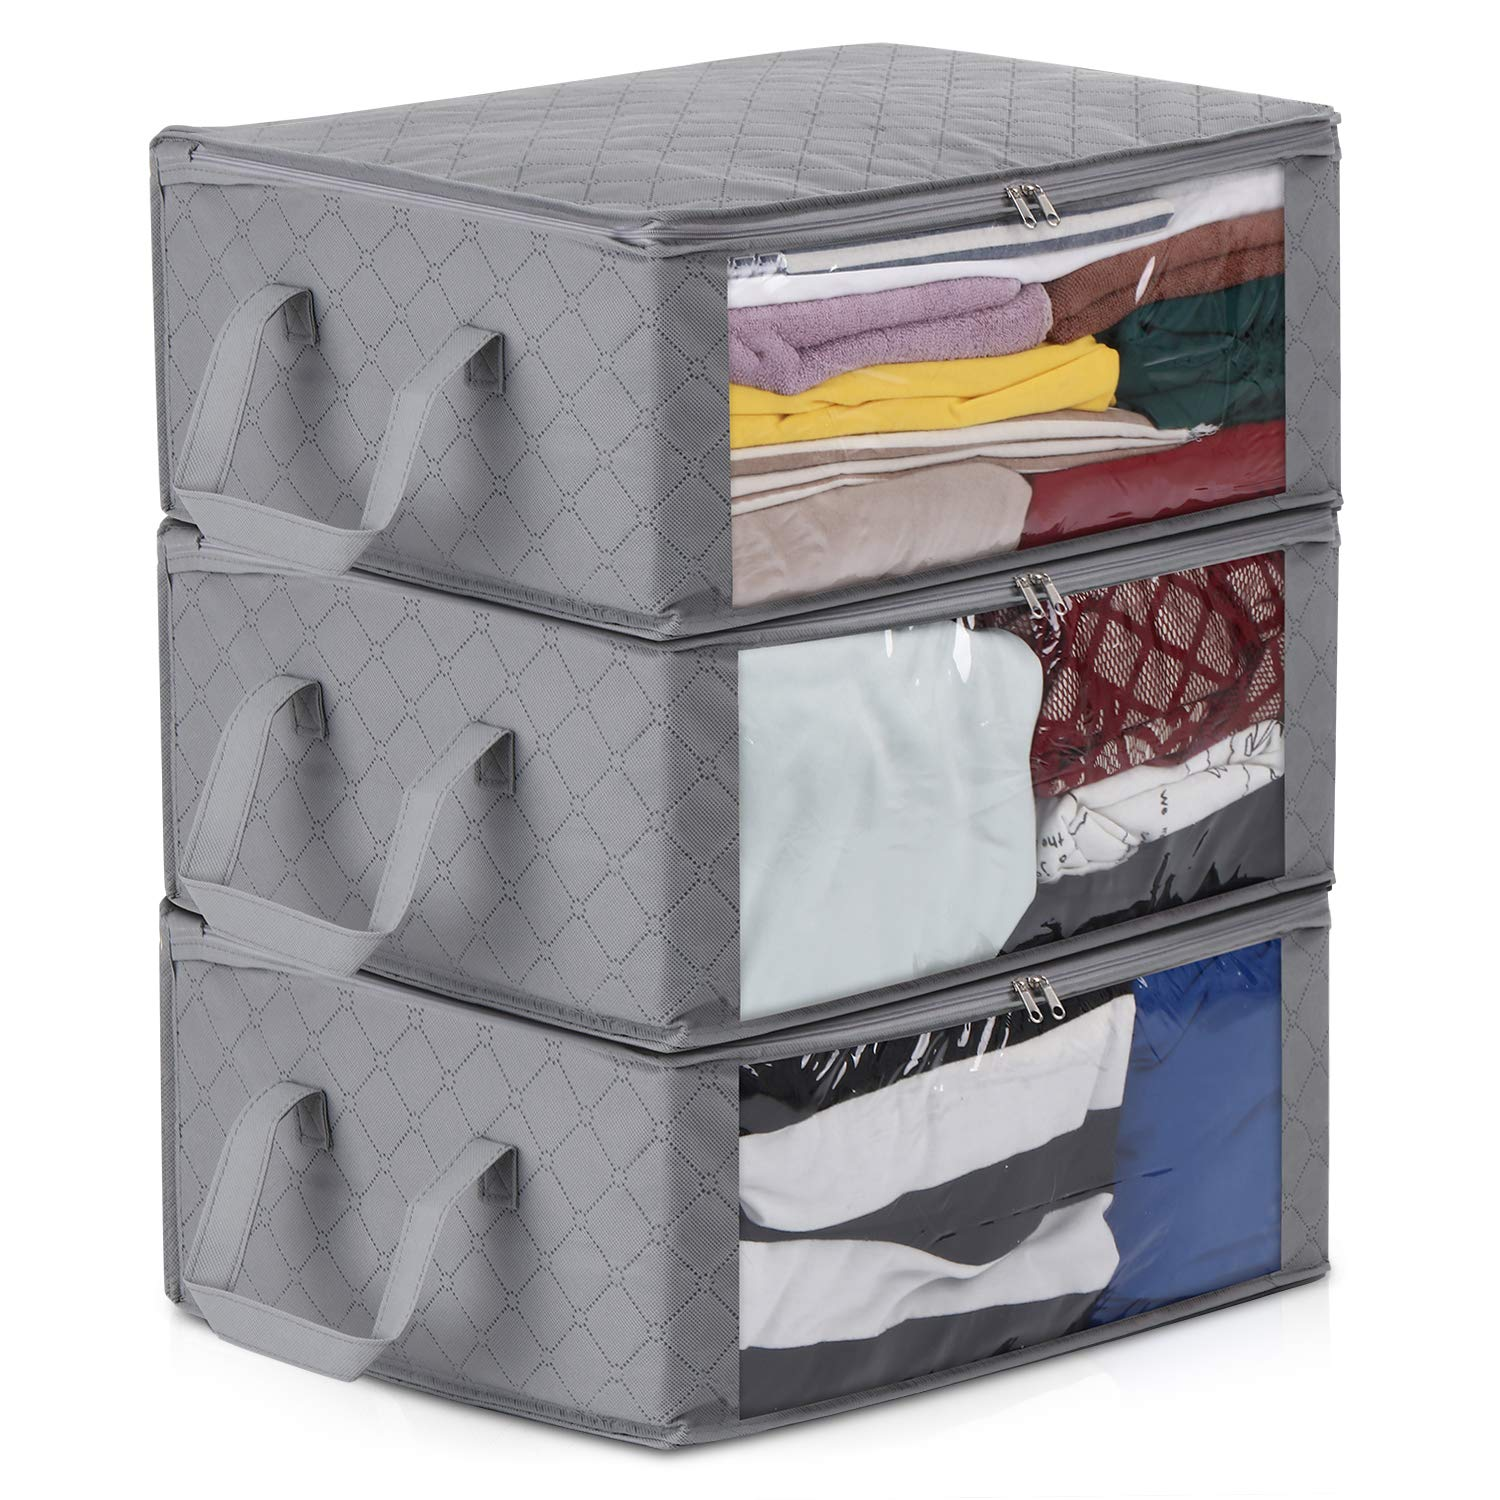 Magicfly Foldable Clothes Organizer 3 Sections Storage Bag Clear Windows Carry Handles for Clothes, Blankets, Closets, Bedrooms